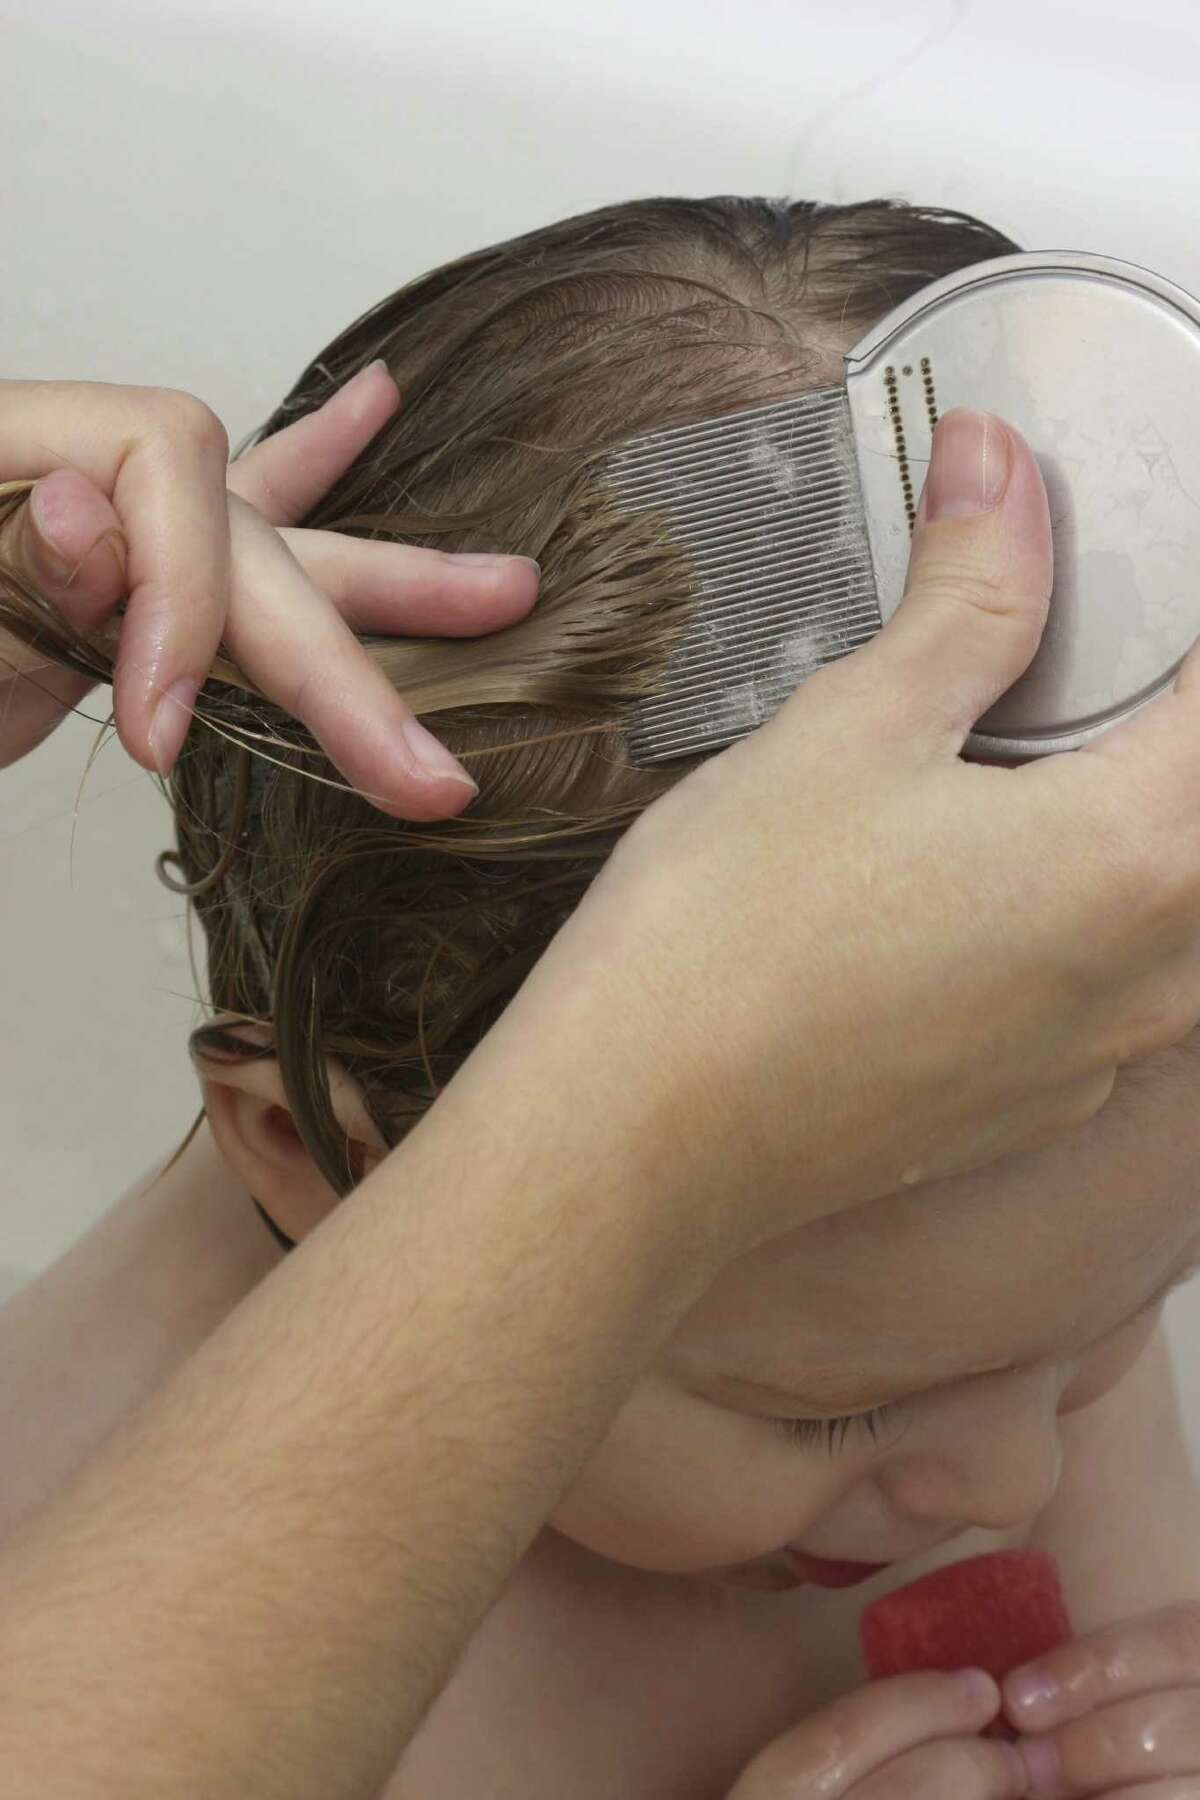 A nit comb will comb out dead lice or loosened nits.